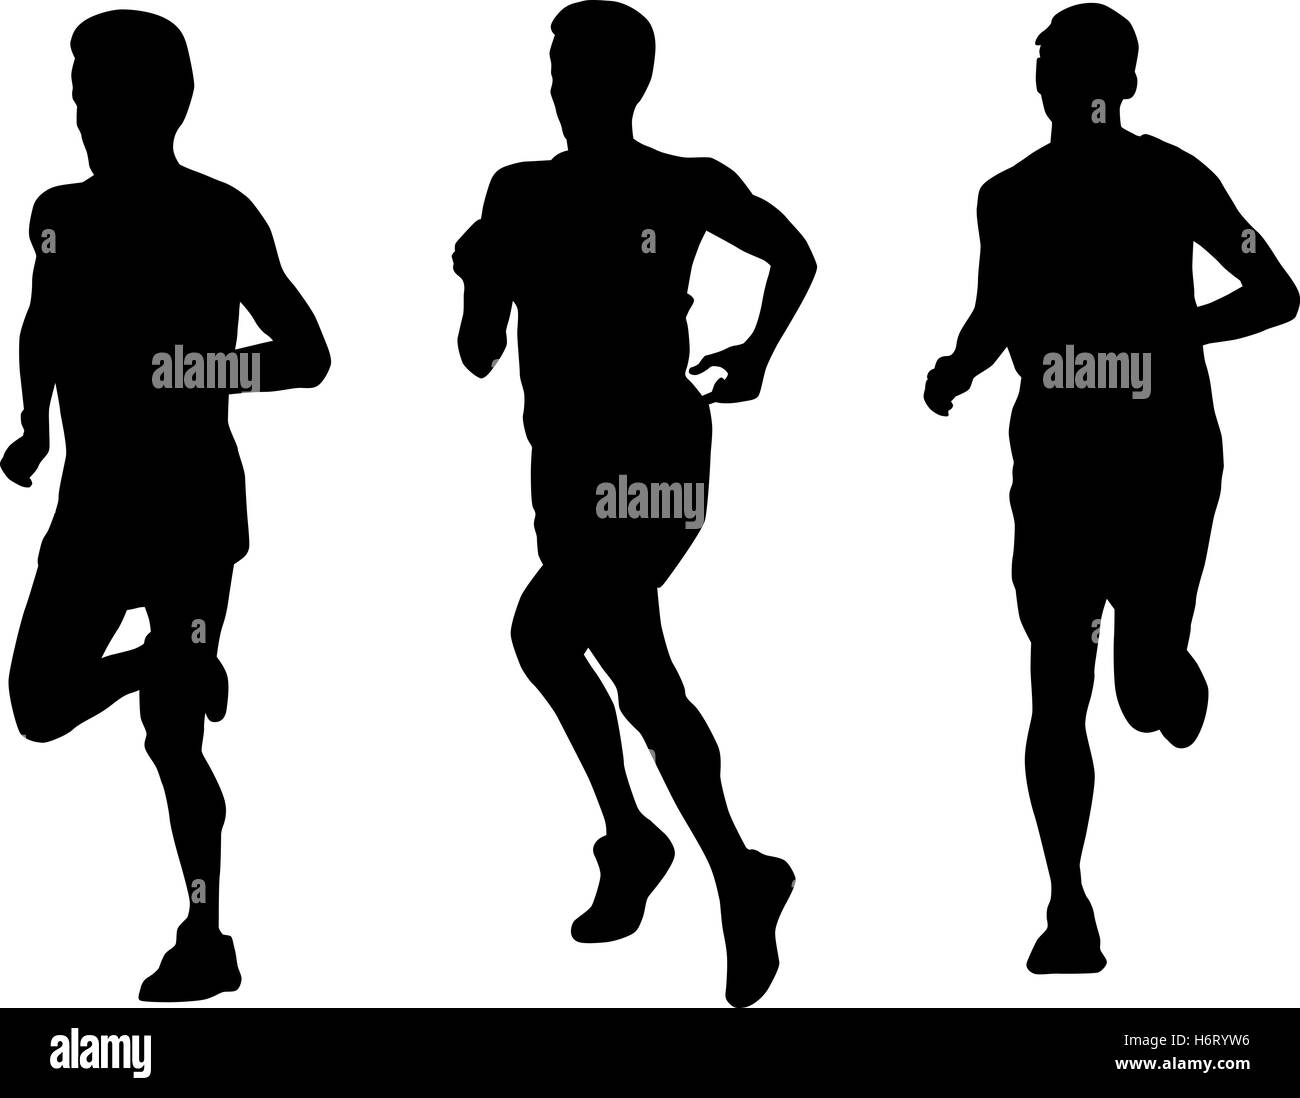 athletic sports - Stock Image